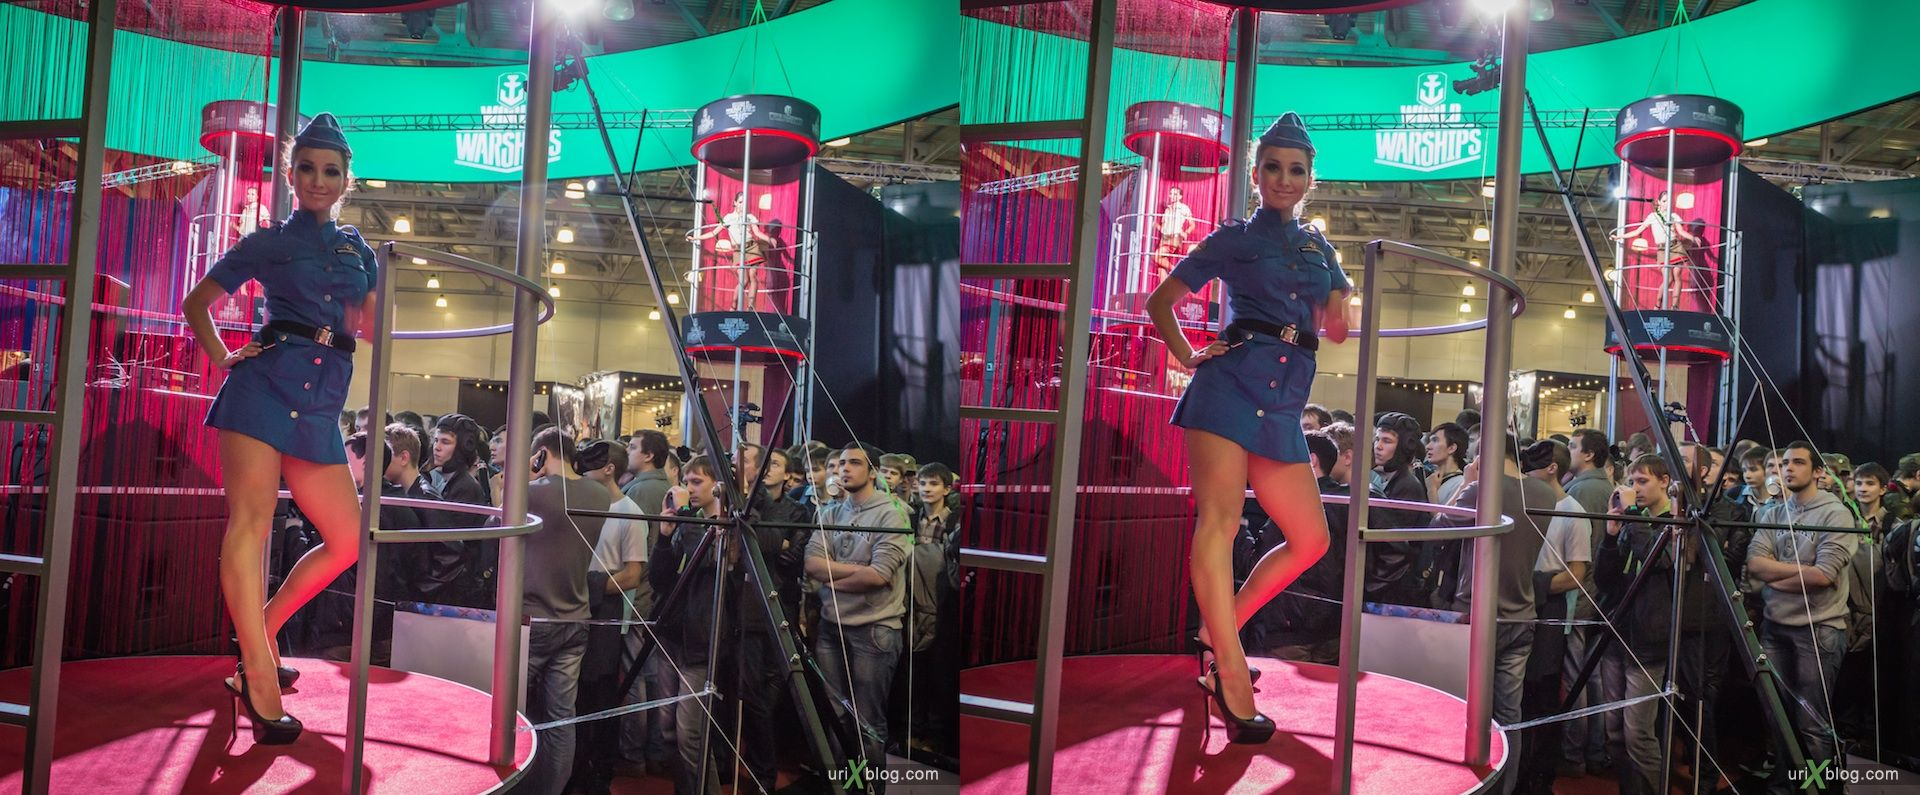 2012.10.06, Gameworld 2012 at Moscow, Crocus Expo